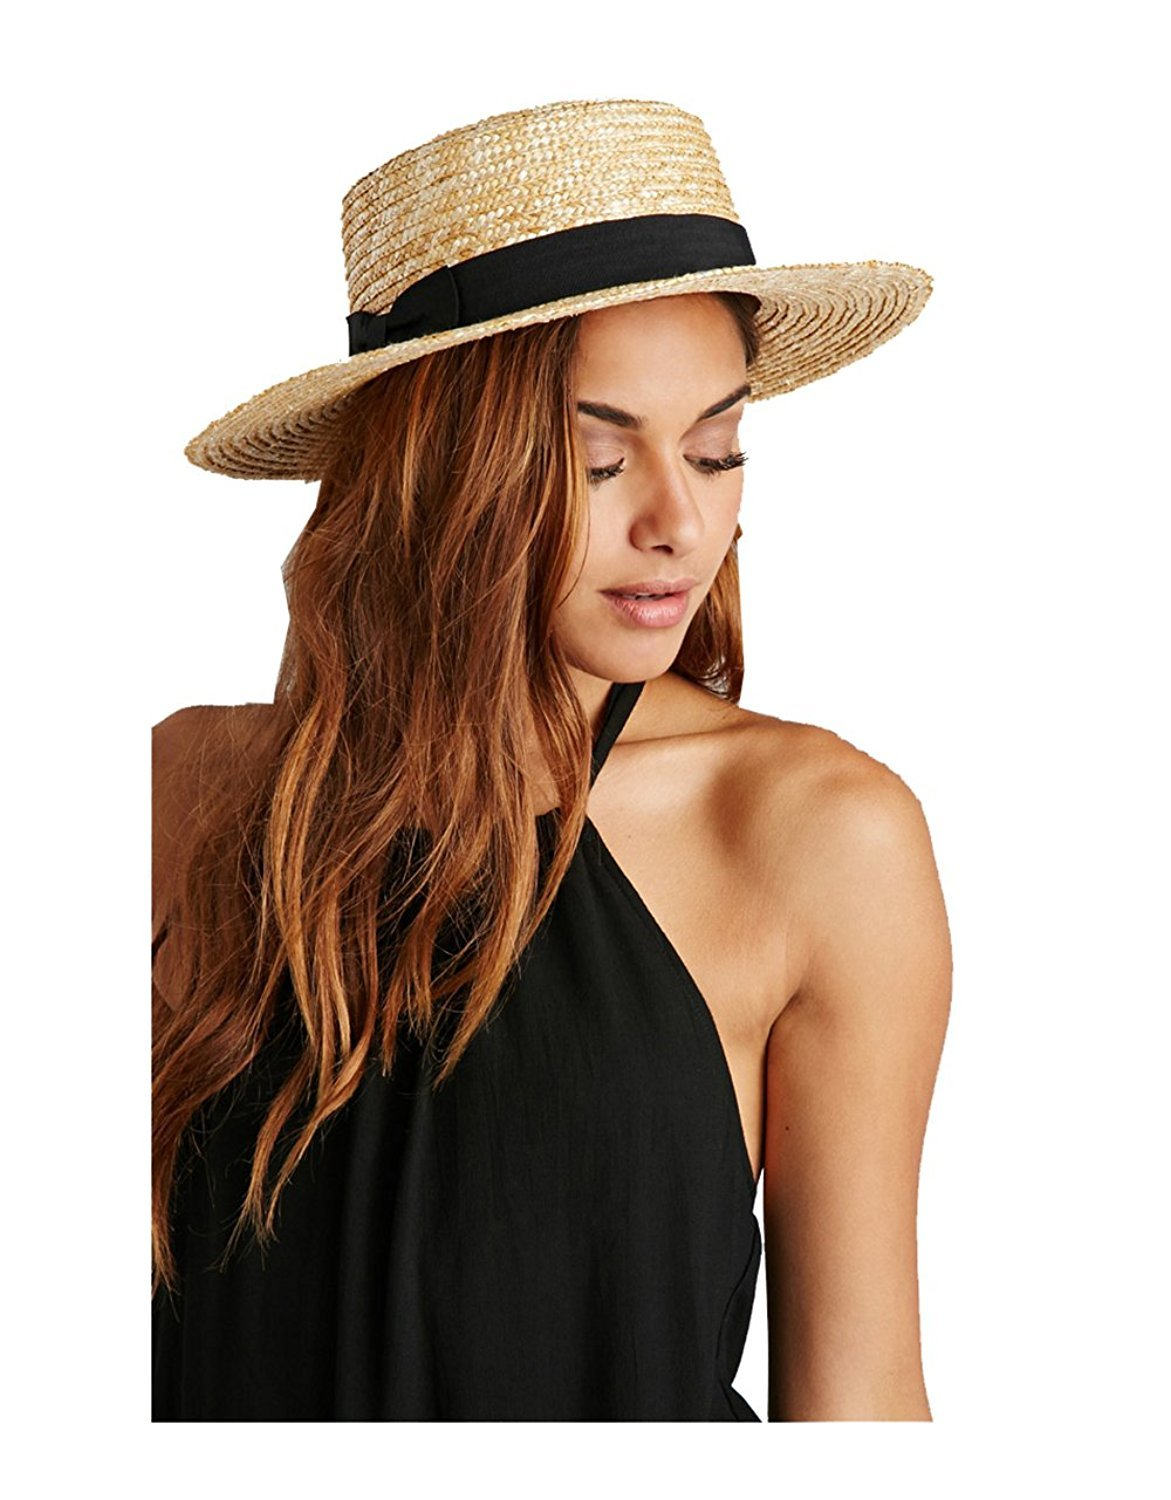 Lack of Color Women's The Spencer Boater Hat (Small / 56cm, Natural Woven Straw)